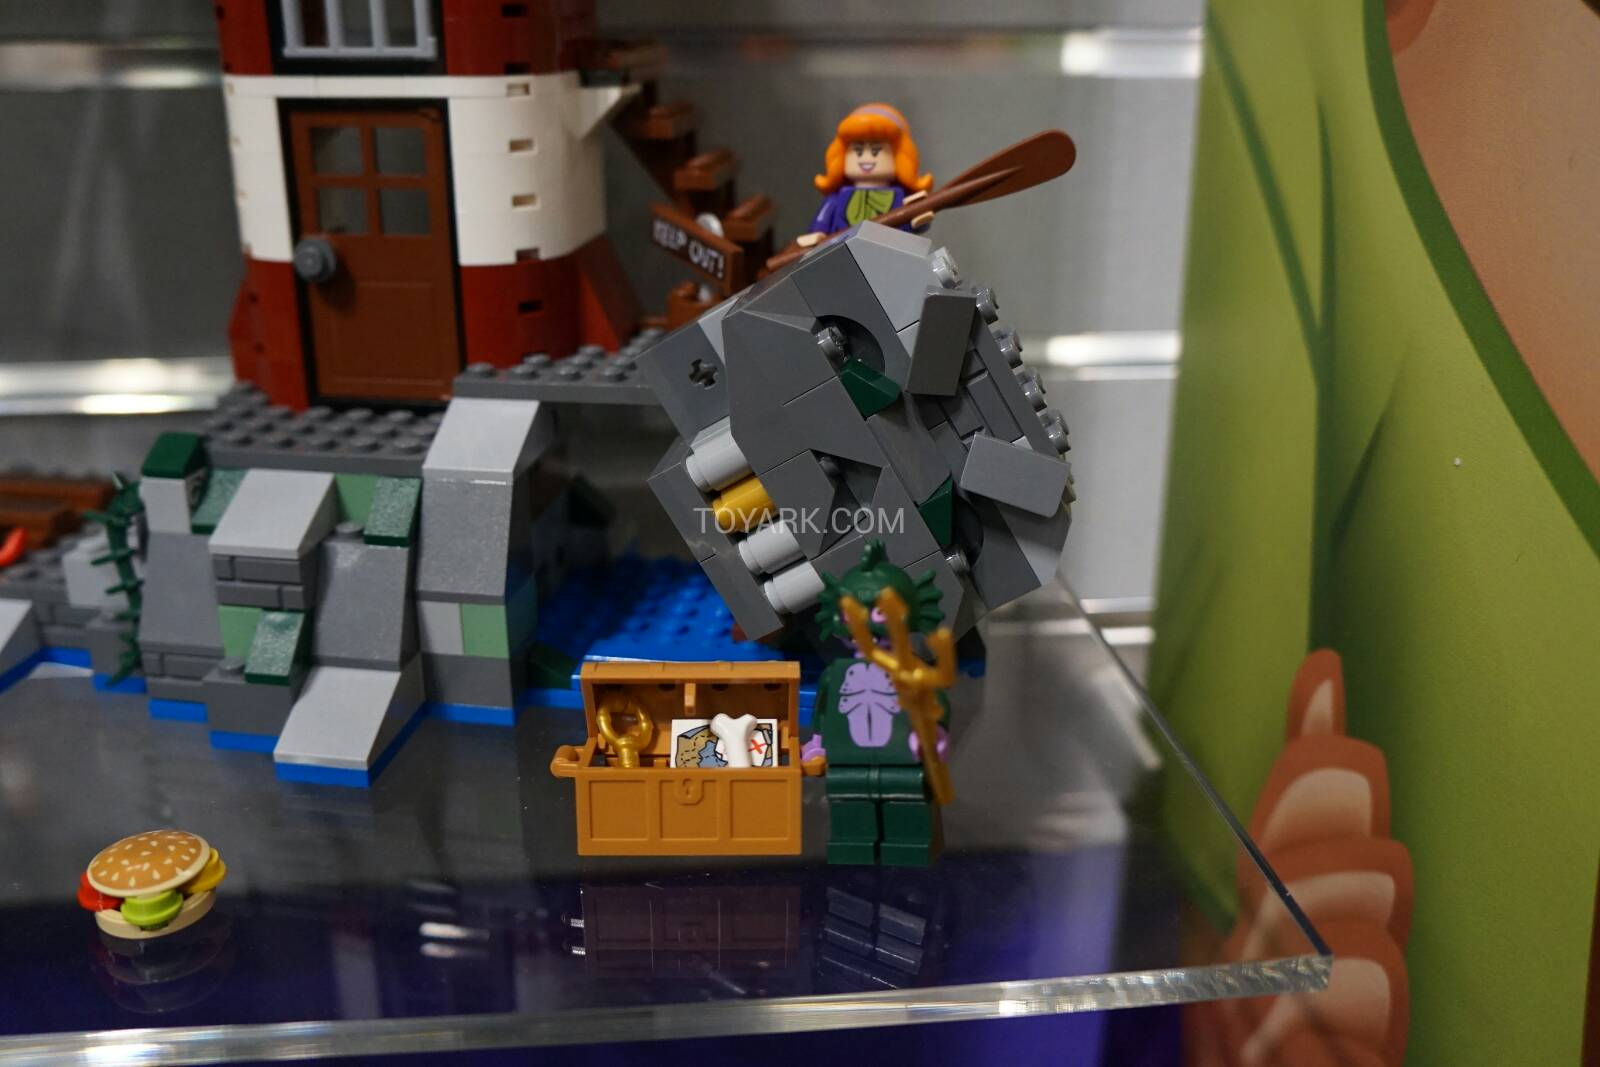 Toy-Fair-2015-LEGO-Scooby-016.jpg